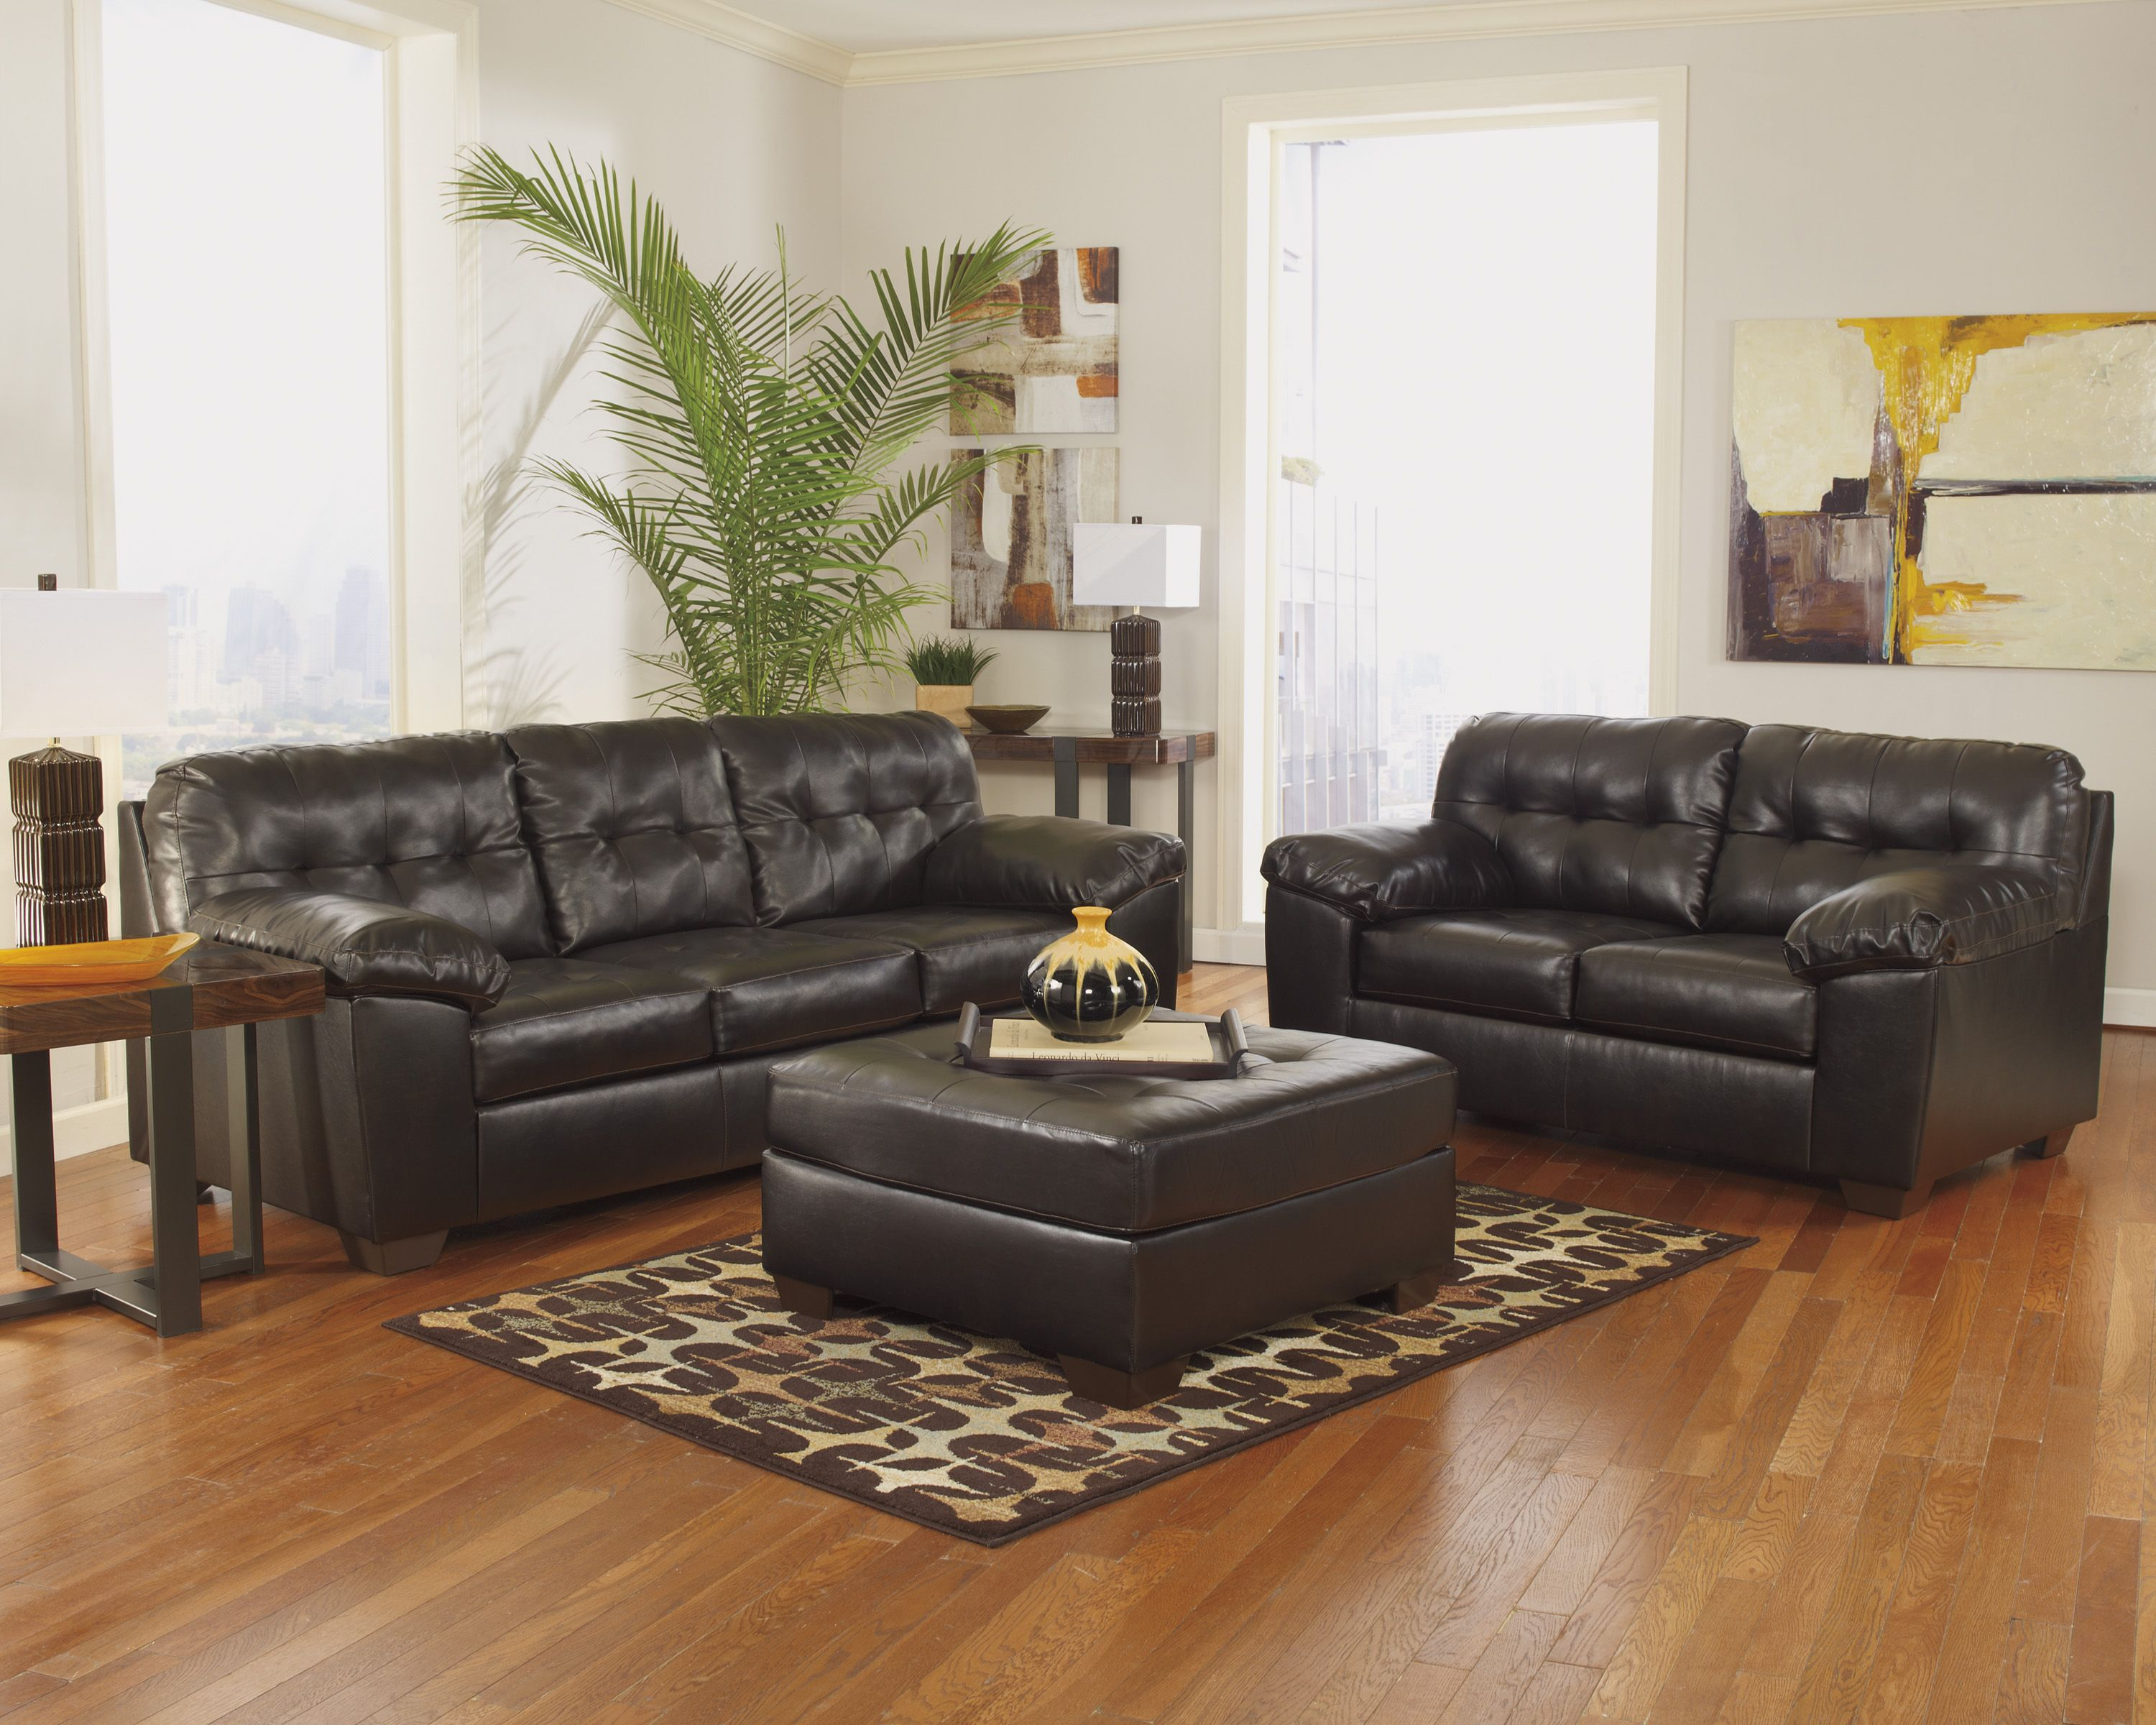 Best Sofa Loveseat 3 Tables 2 Lamps 1 Rug O 1 Sectional 3 400 x 300